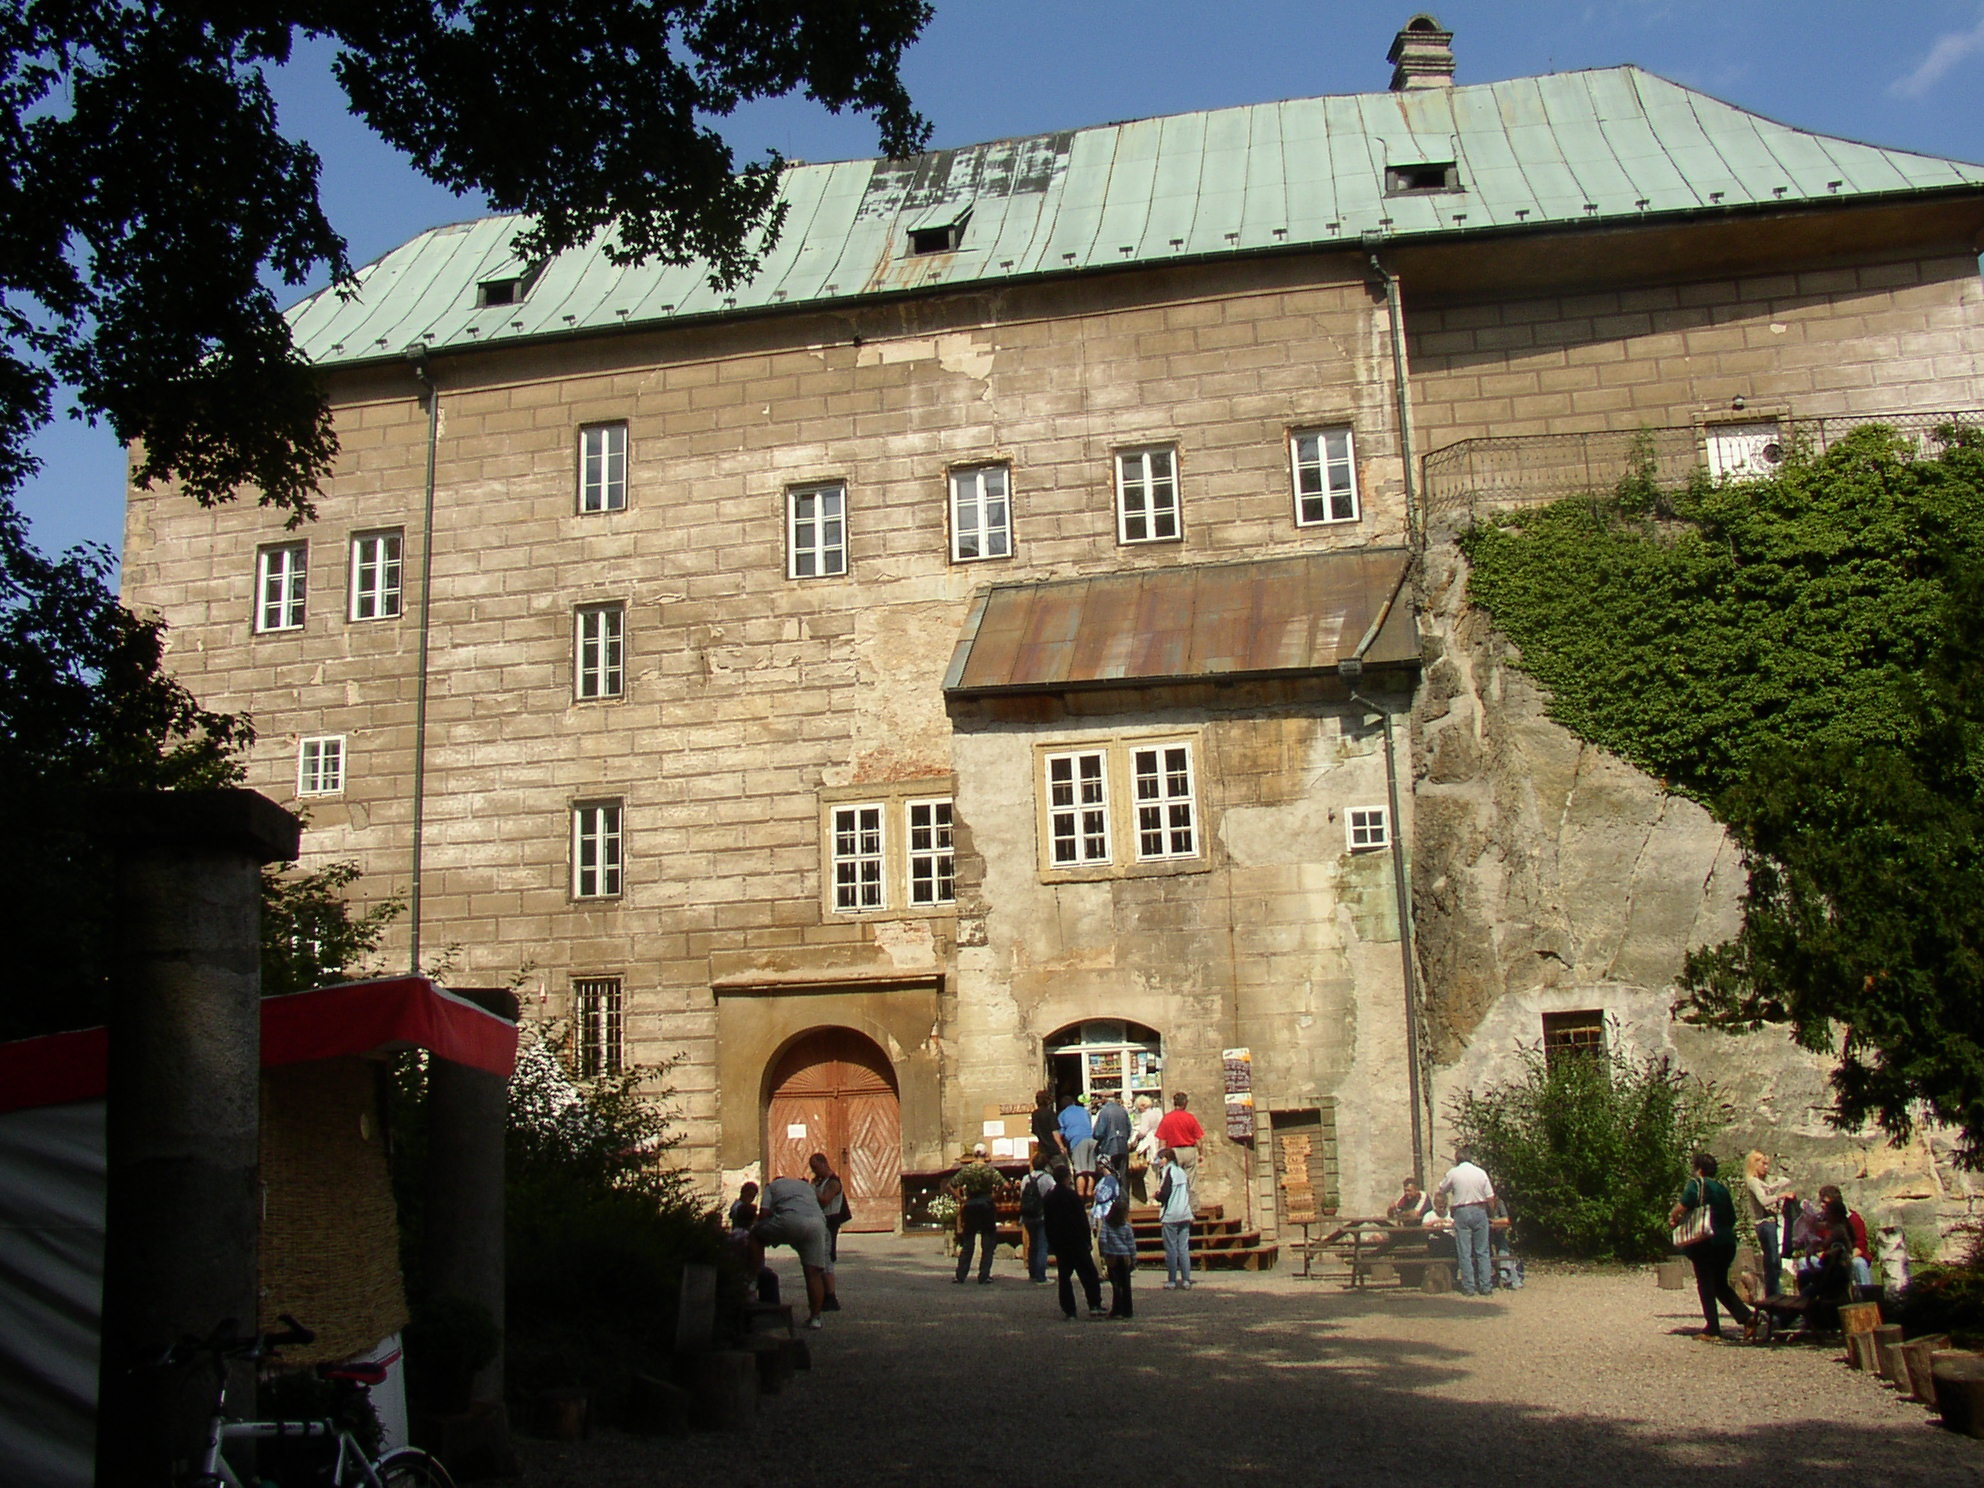 http://upload.wikimedia.org/wikipedia/commons/4/4f/Burg_Houska.jpg